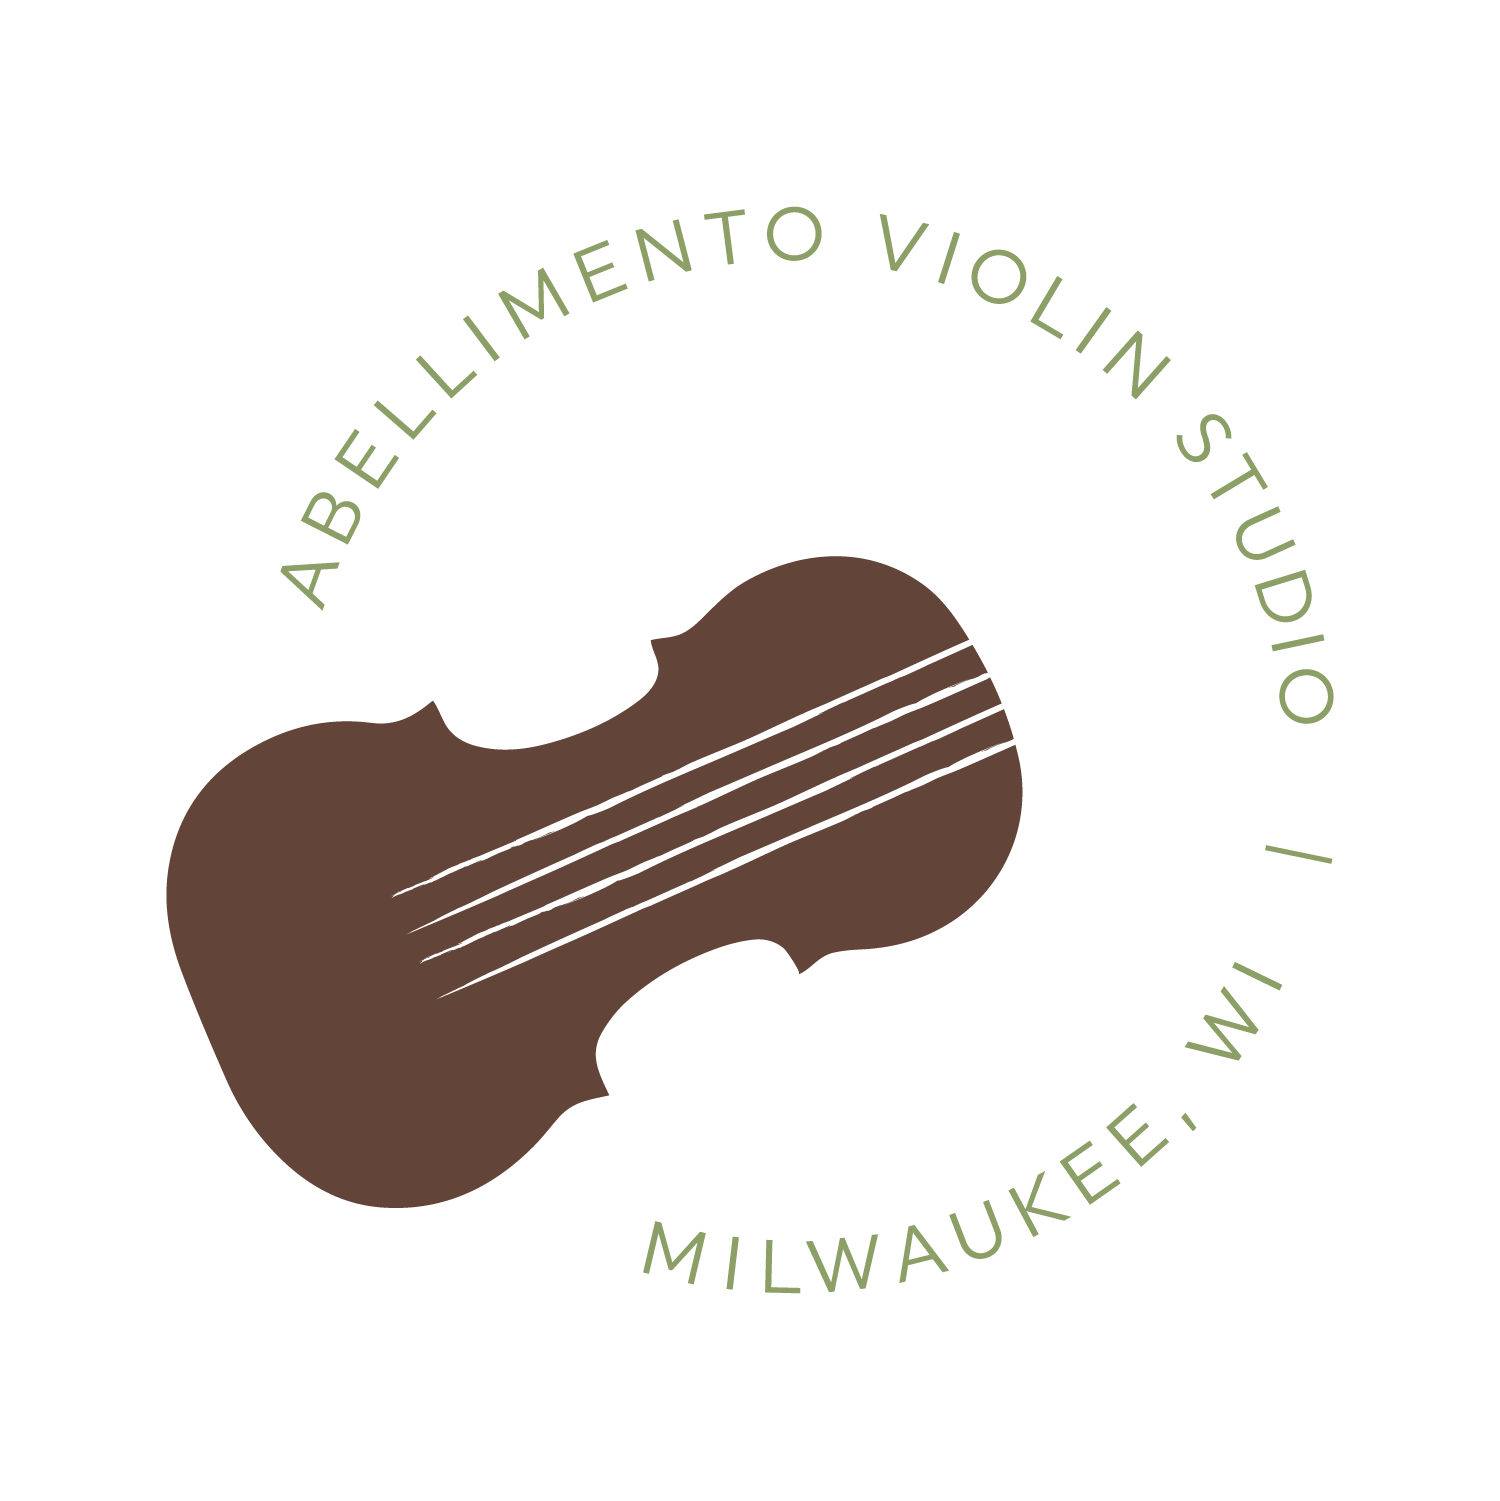 Abellimento Violin Studio  |  Suzuki Violin Lessons in Milwaukee, WI